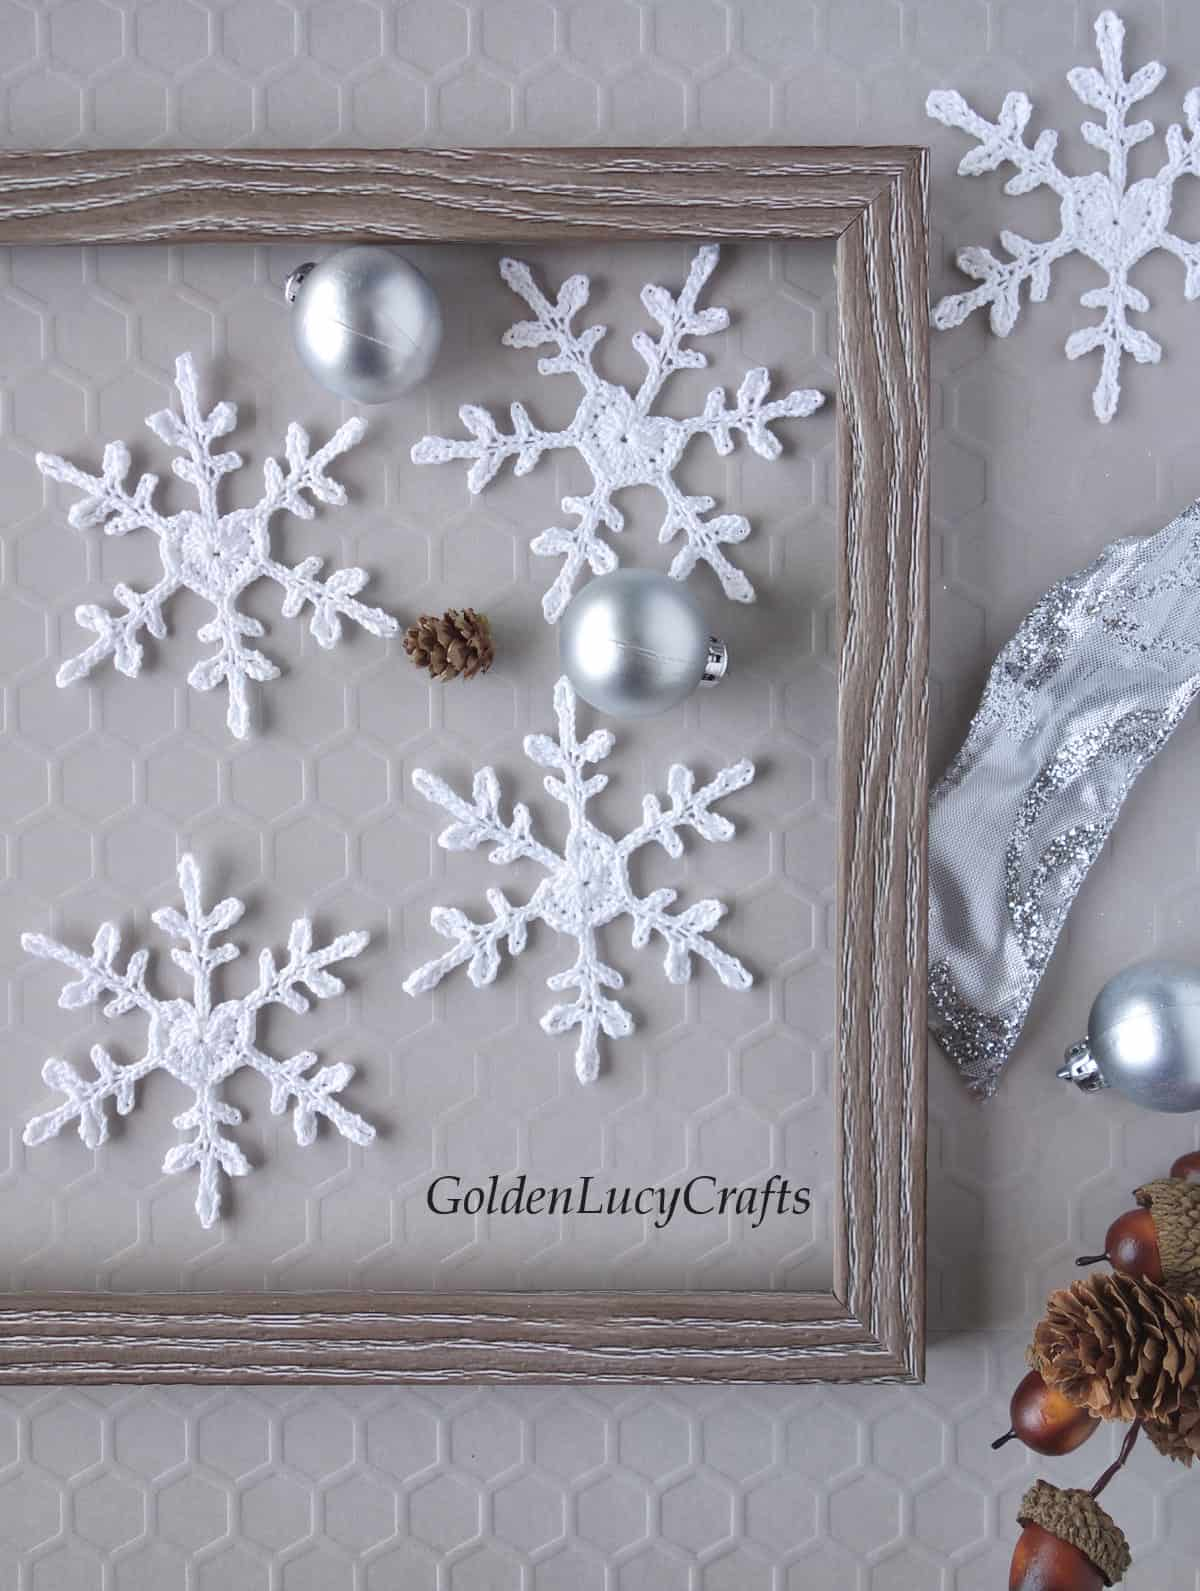 Crochet white snowflakes with heart center, small silver Christmas ball ornaments and small pinecone  laying inside of picture frame